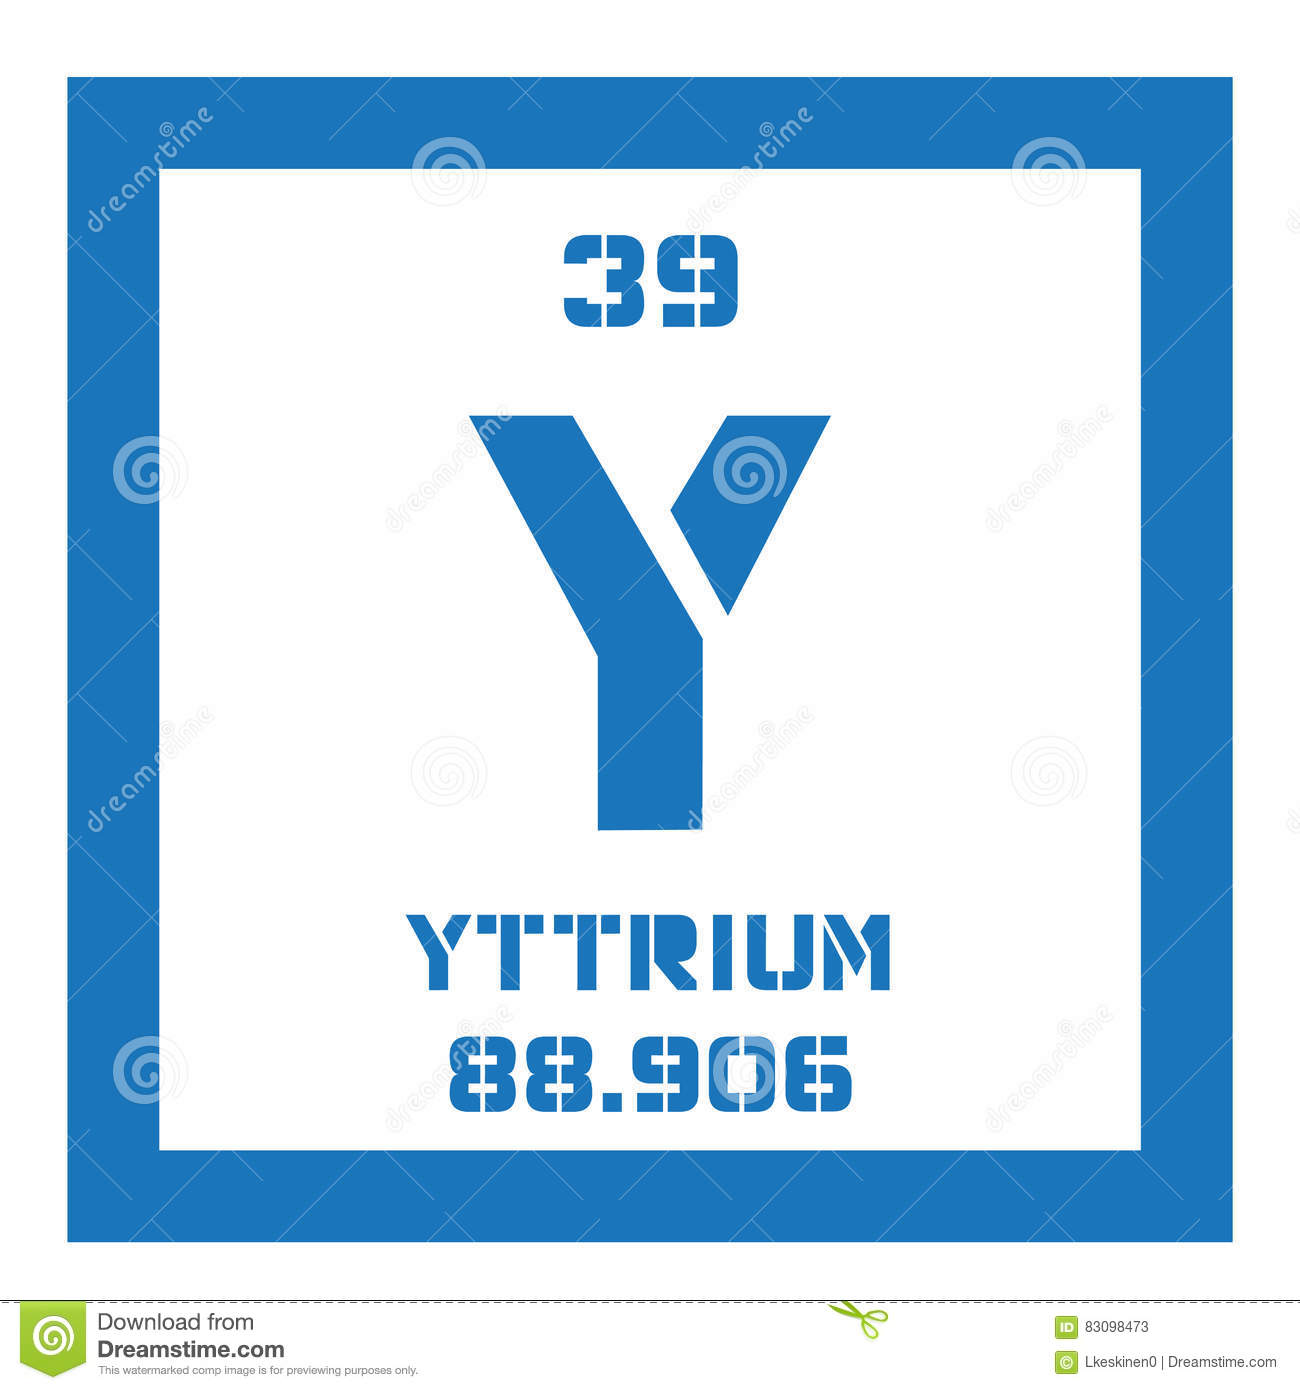 Yttrium Chemical Element Stock Vector Illustration Of Science